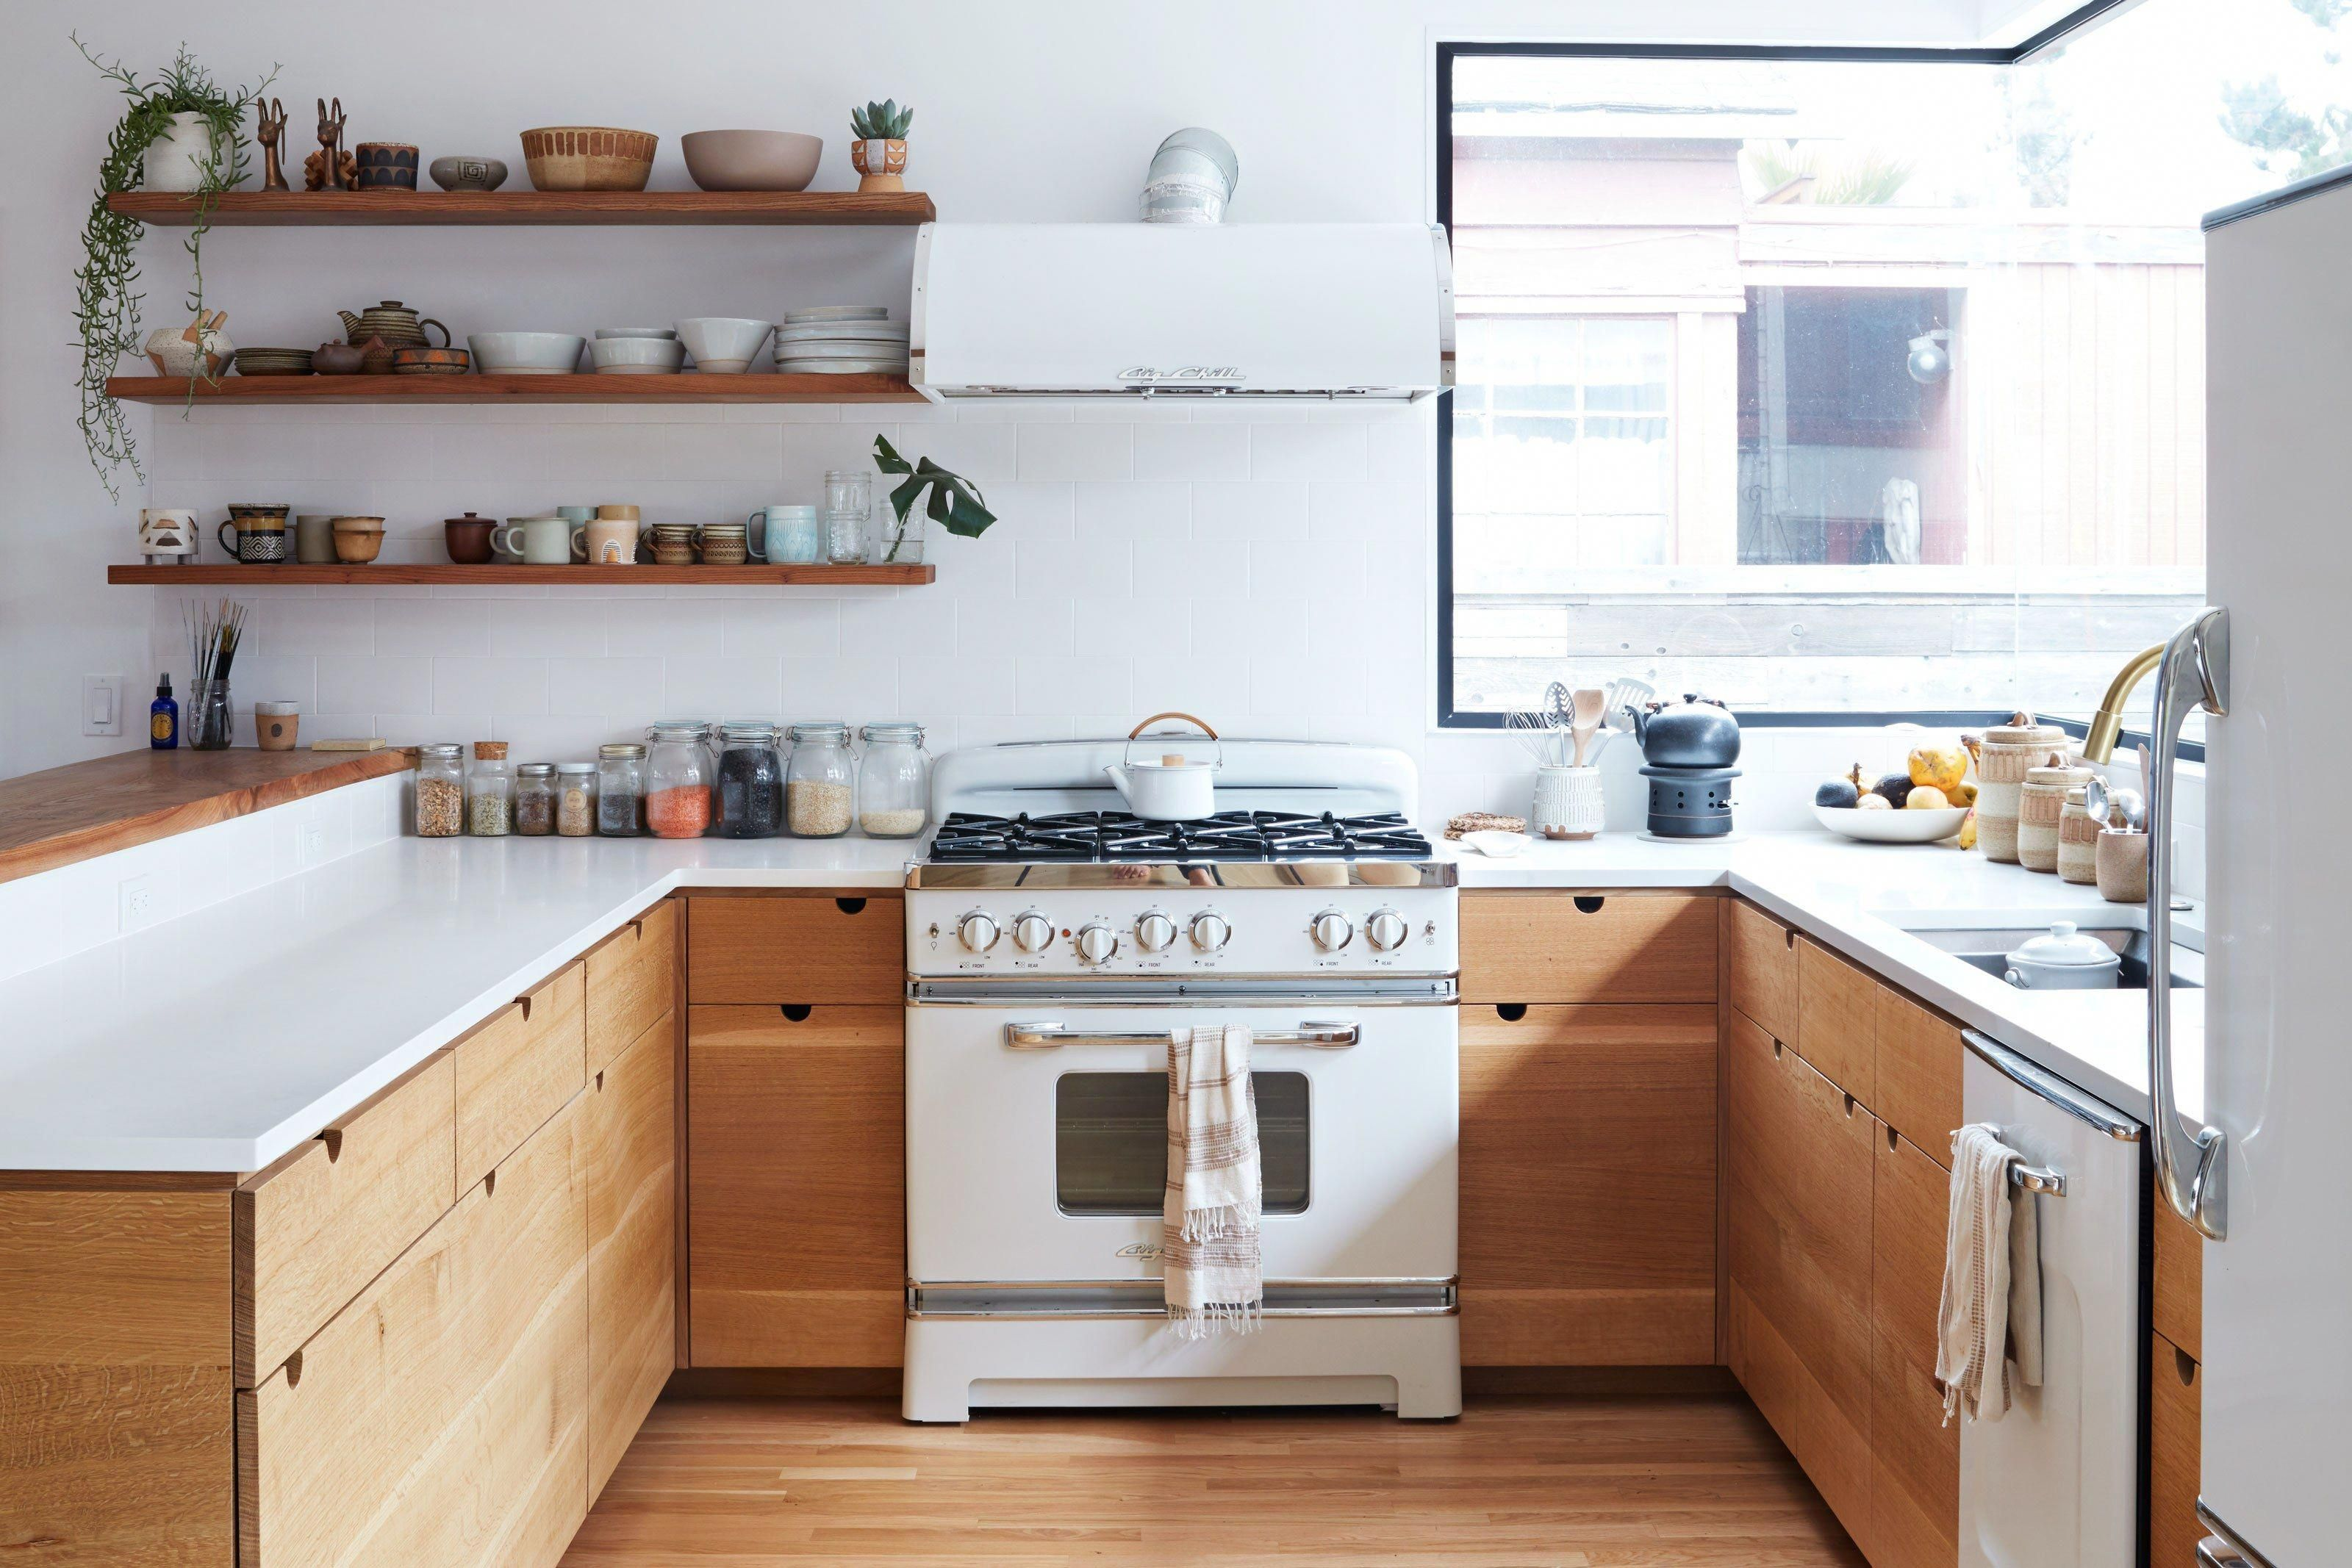 The 10 Items You Can Throw Away Easily Room By Room